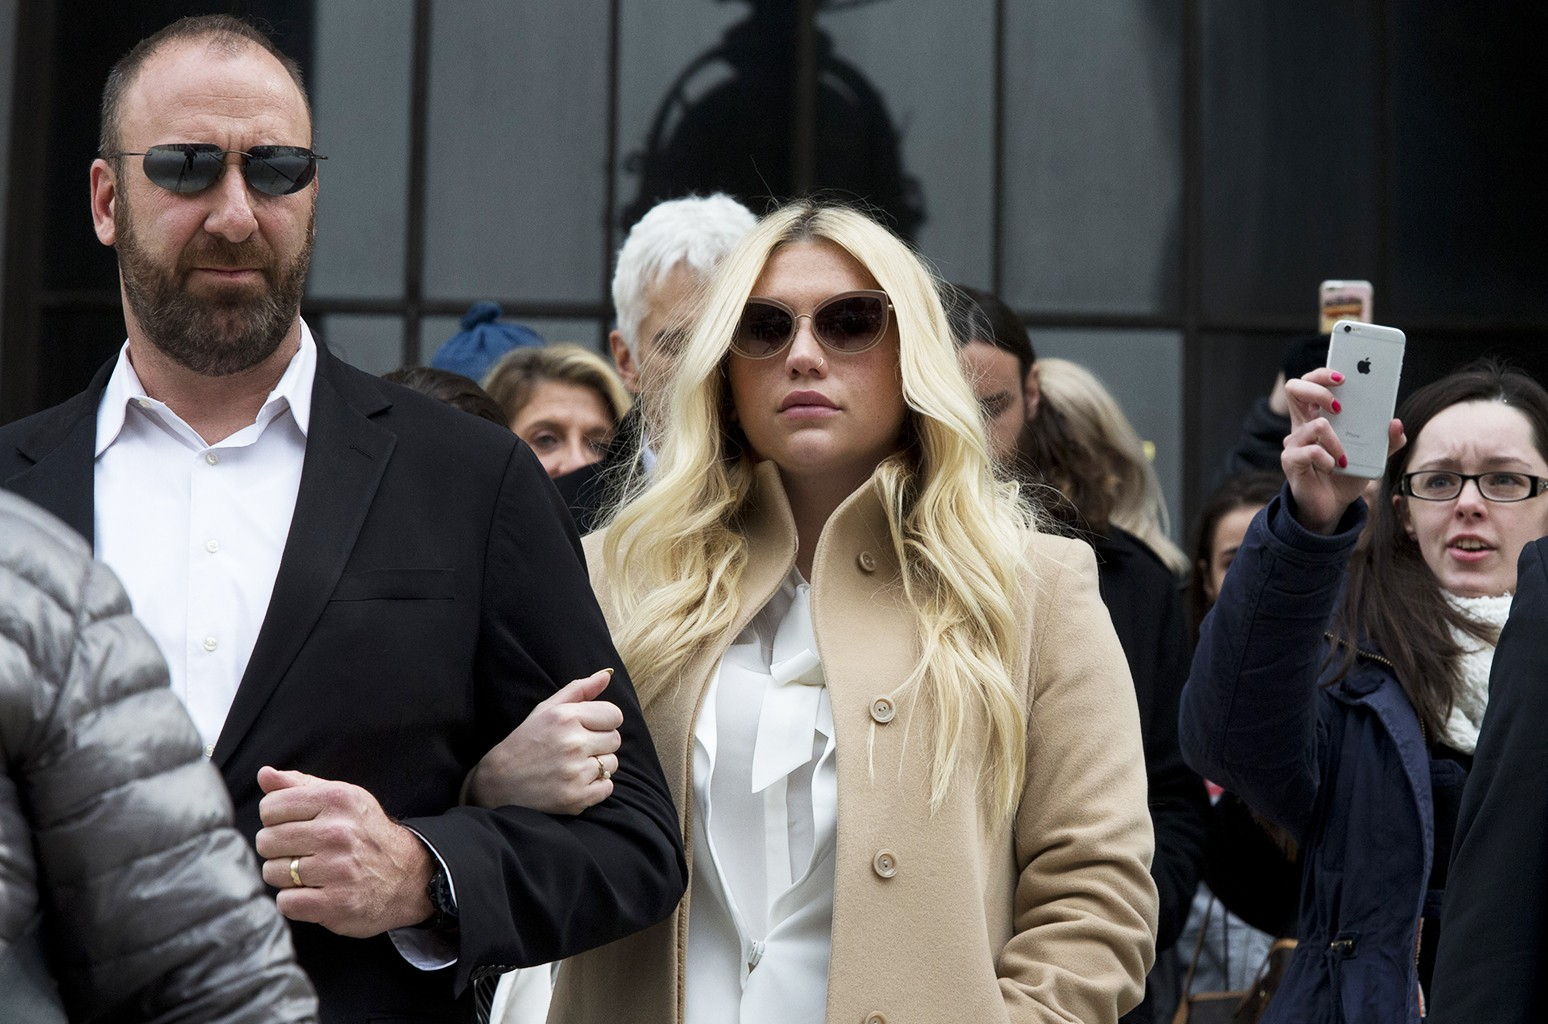 Kesha leaves the New York State Supreme Court on Feb. 19, 2016 in New York City.